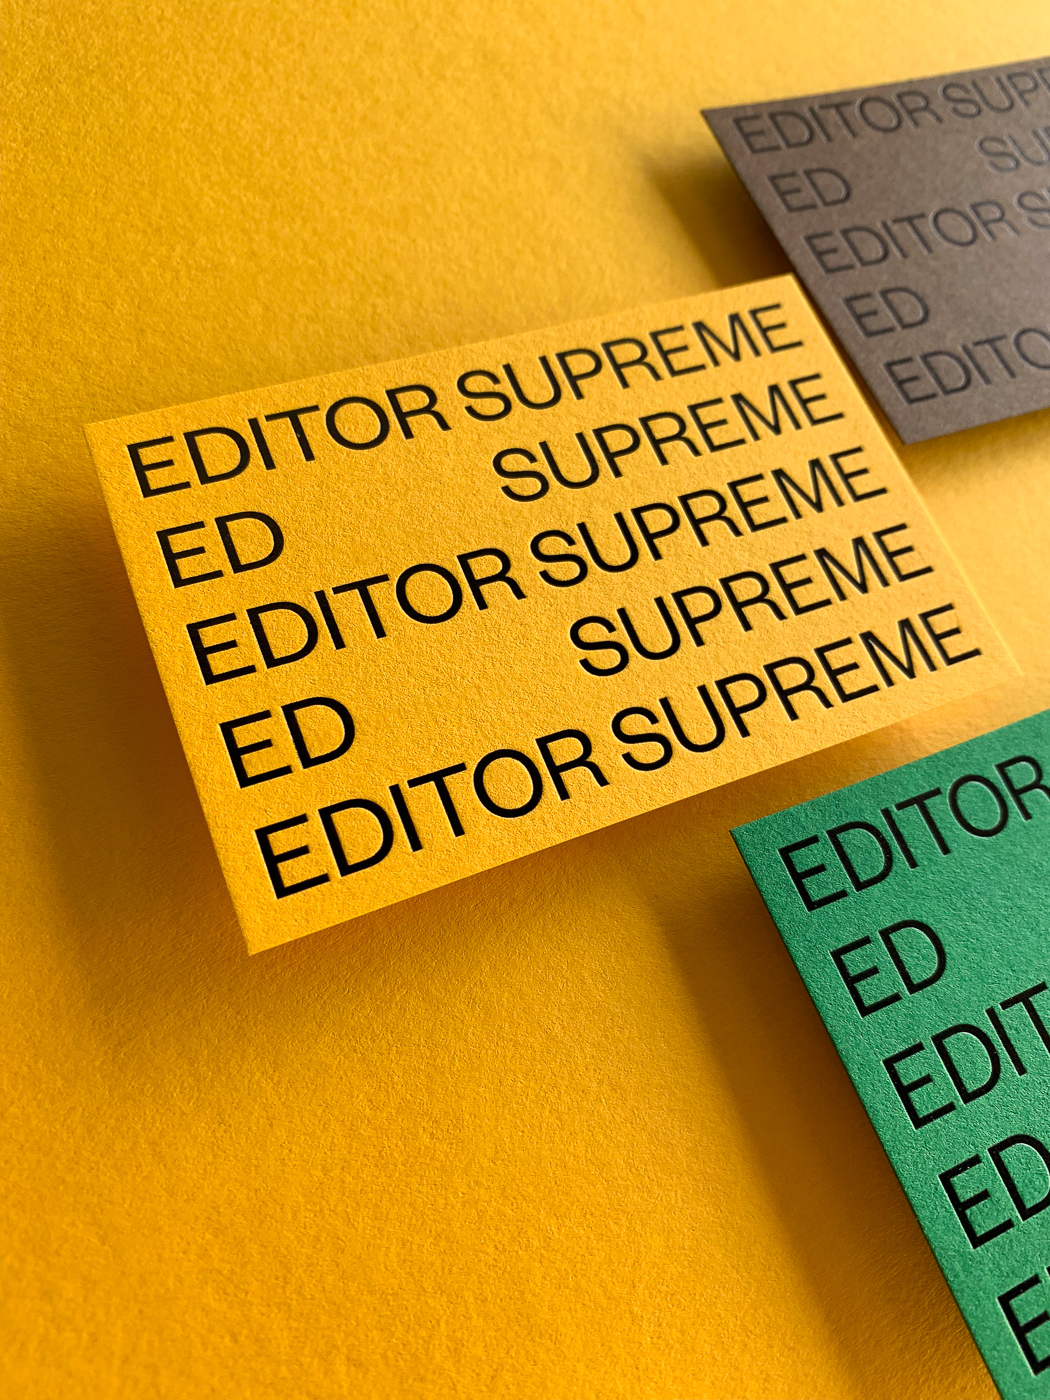 Black foil business cards for Ed Supreme on Colorplan 3